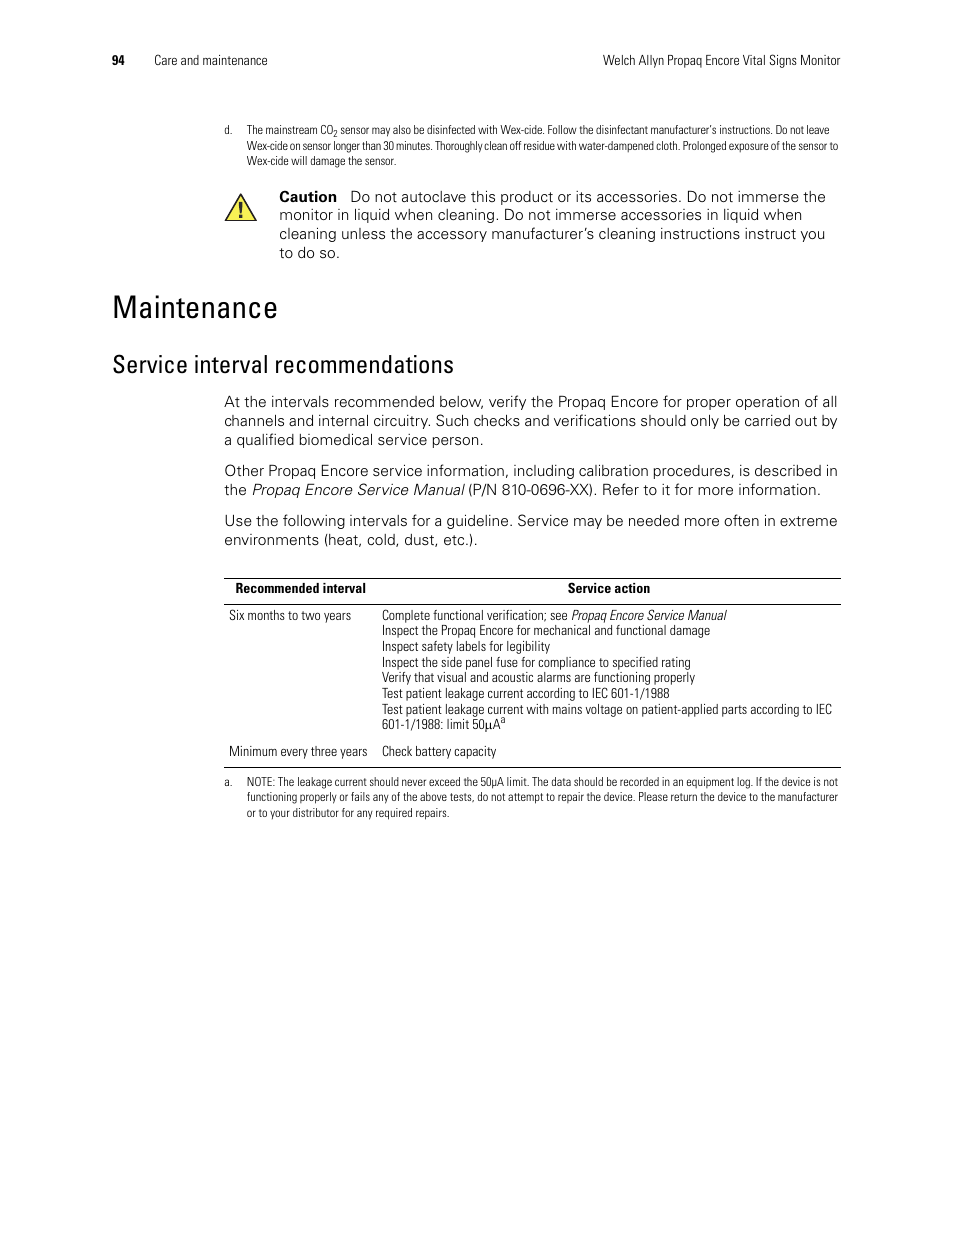 Maintenance Service Interval Recommendations Welch Allyn 206el Mains Voltage Monitor Propaq Encore Vital Signs User Manual Page 98 142